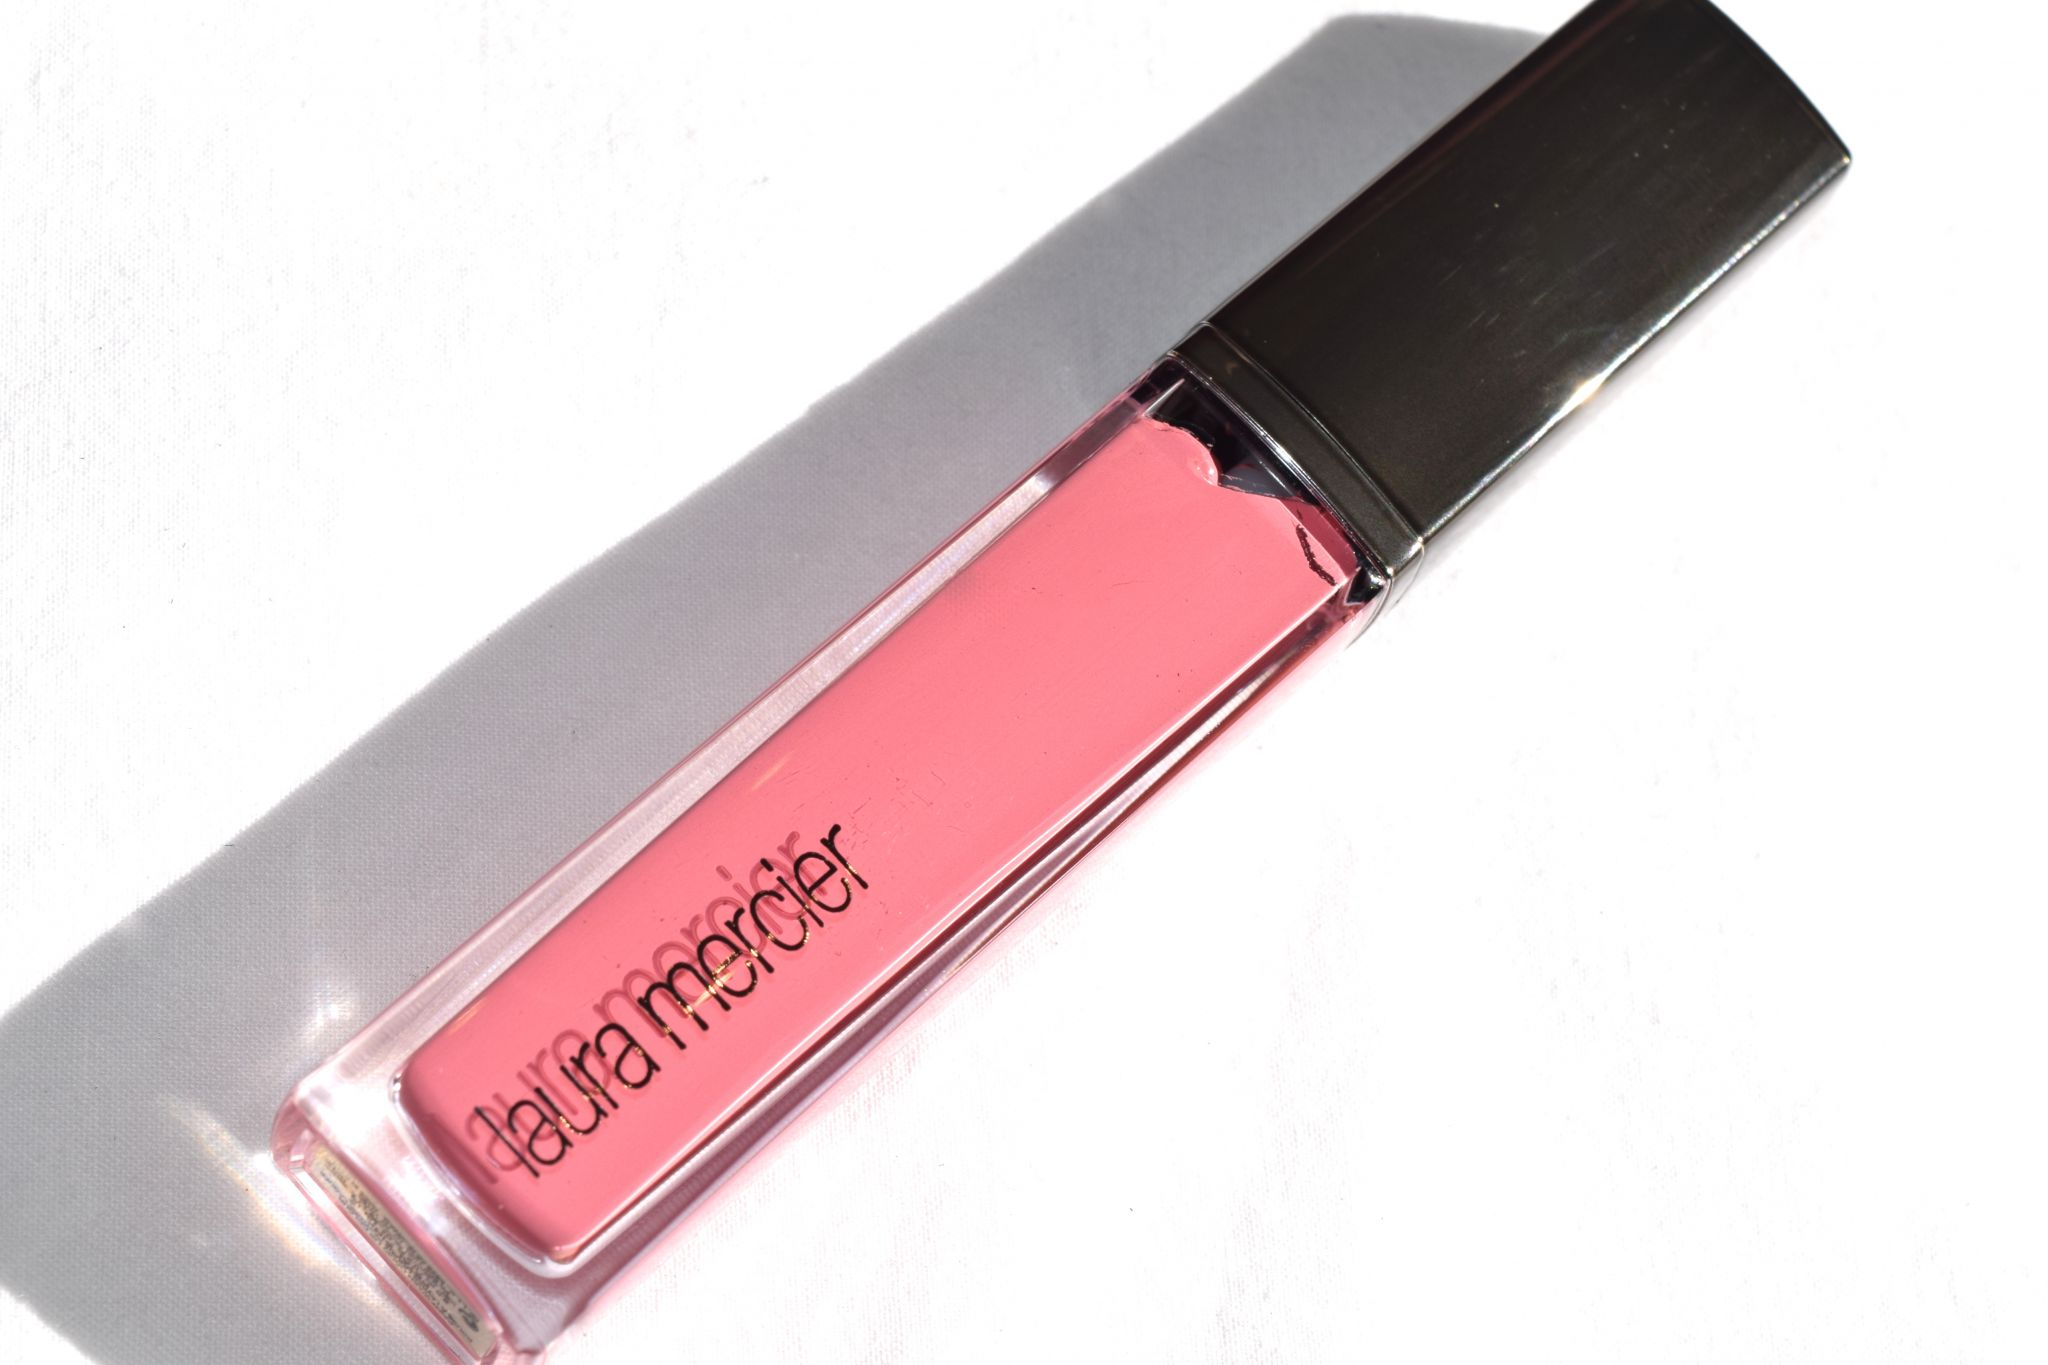 Laura Mercier Paint Wash Liquid Lip Color Pink Petal